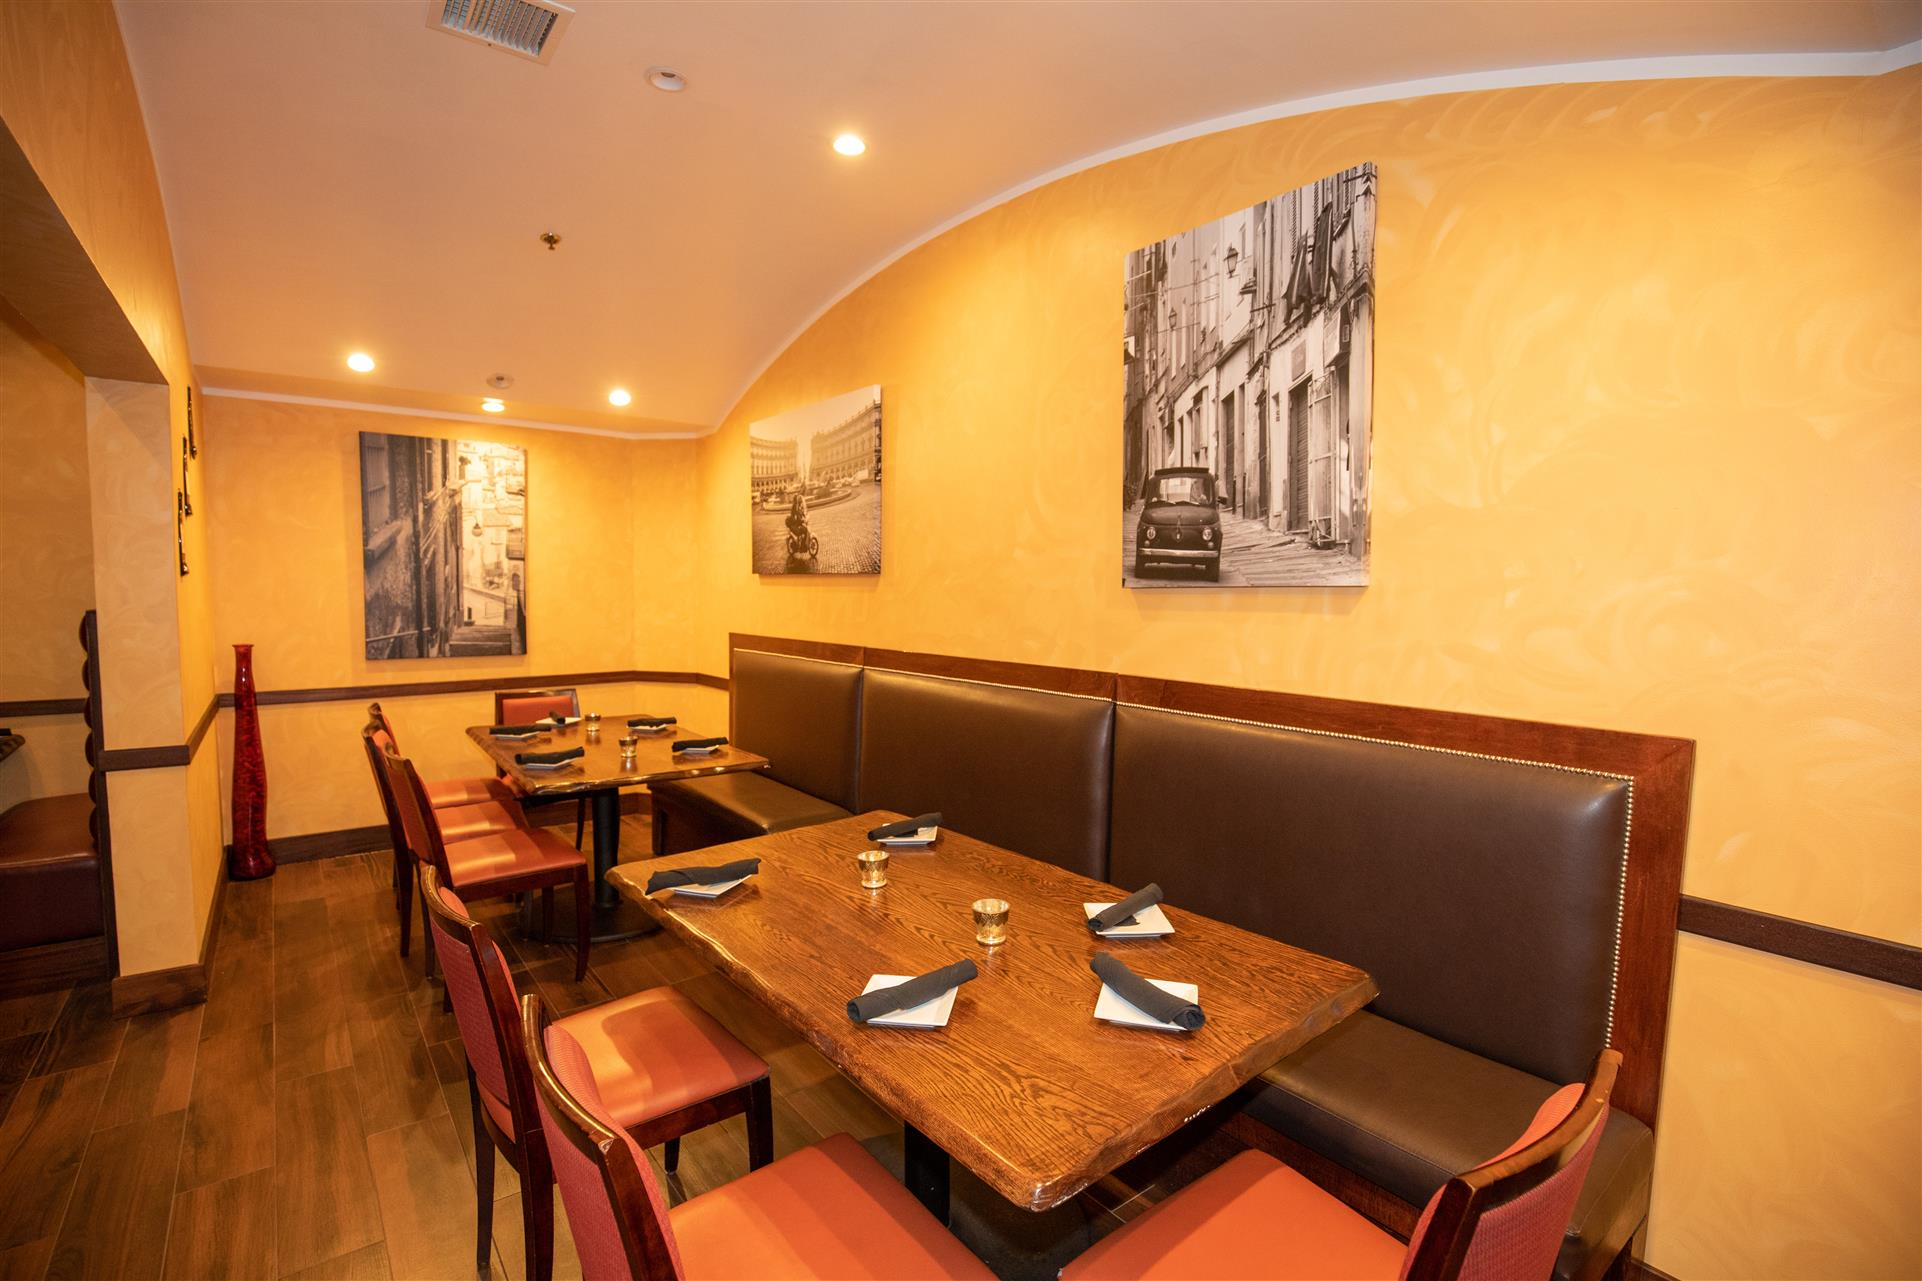 Privacy Room area inside the restaurant with paintings on the wall and tables and chairs